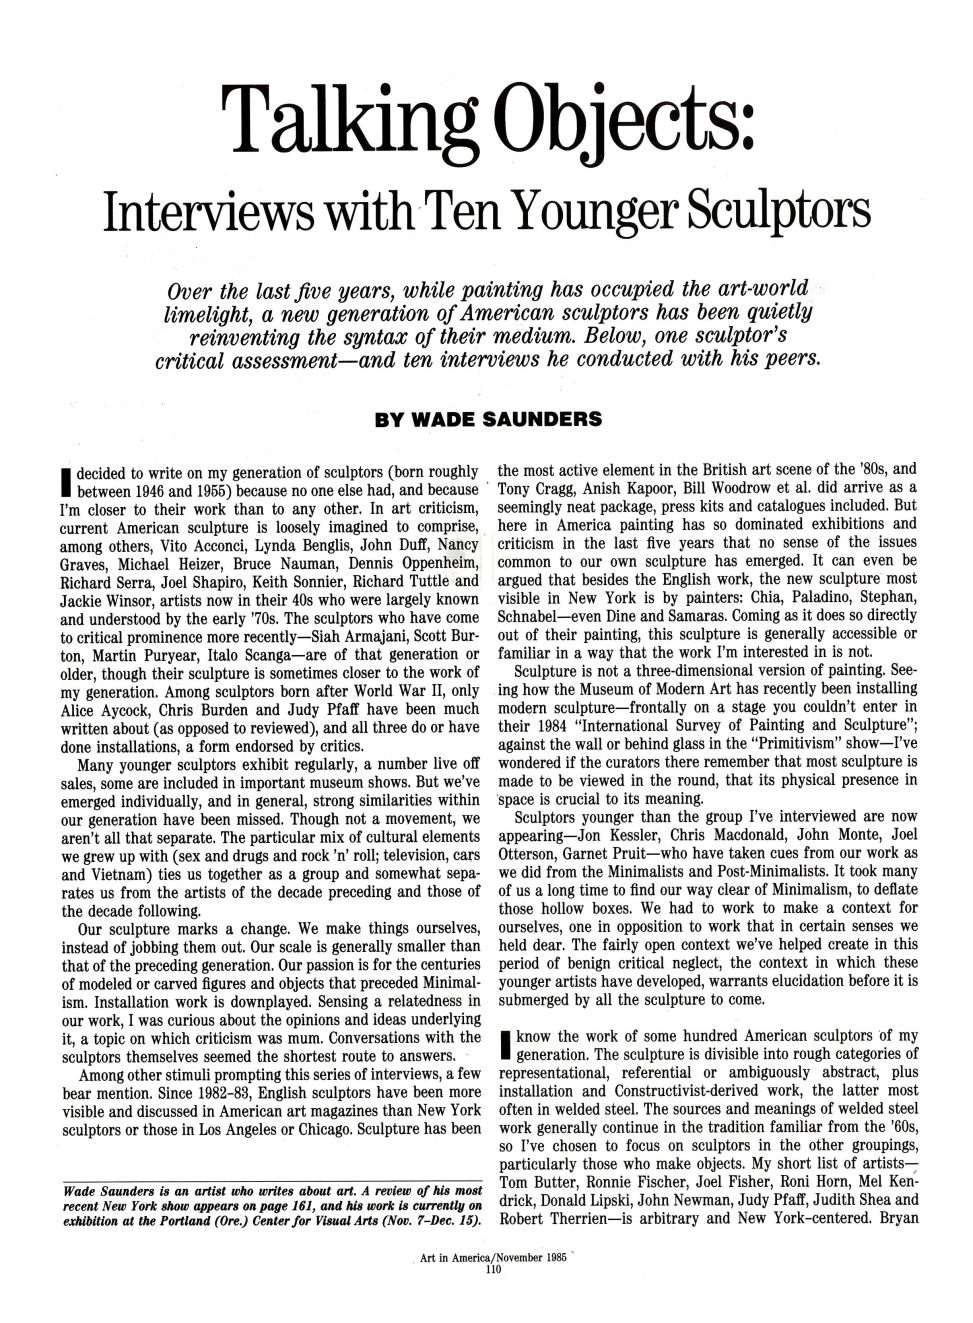 art_in_america_1985_talking_objects_page110